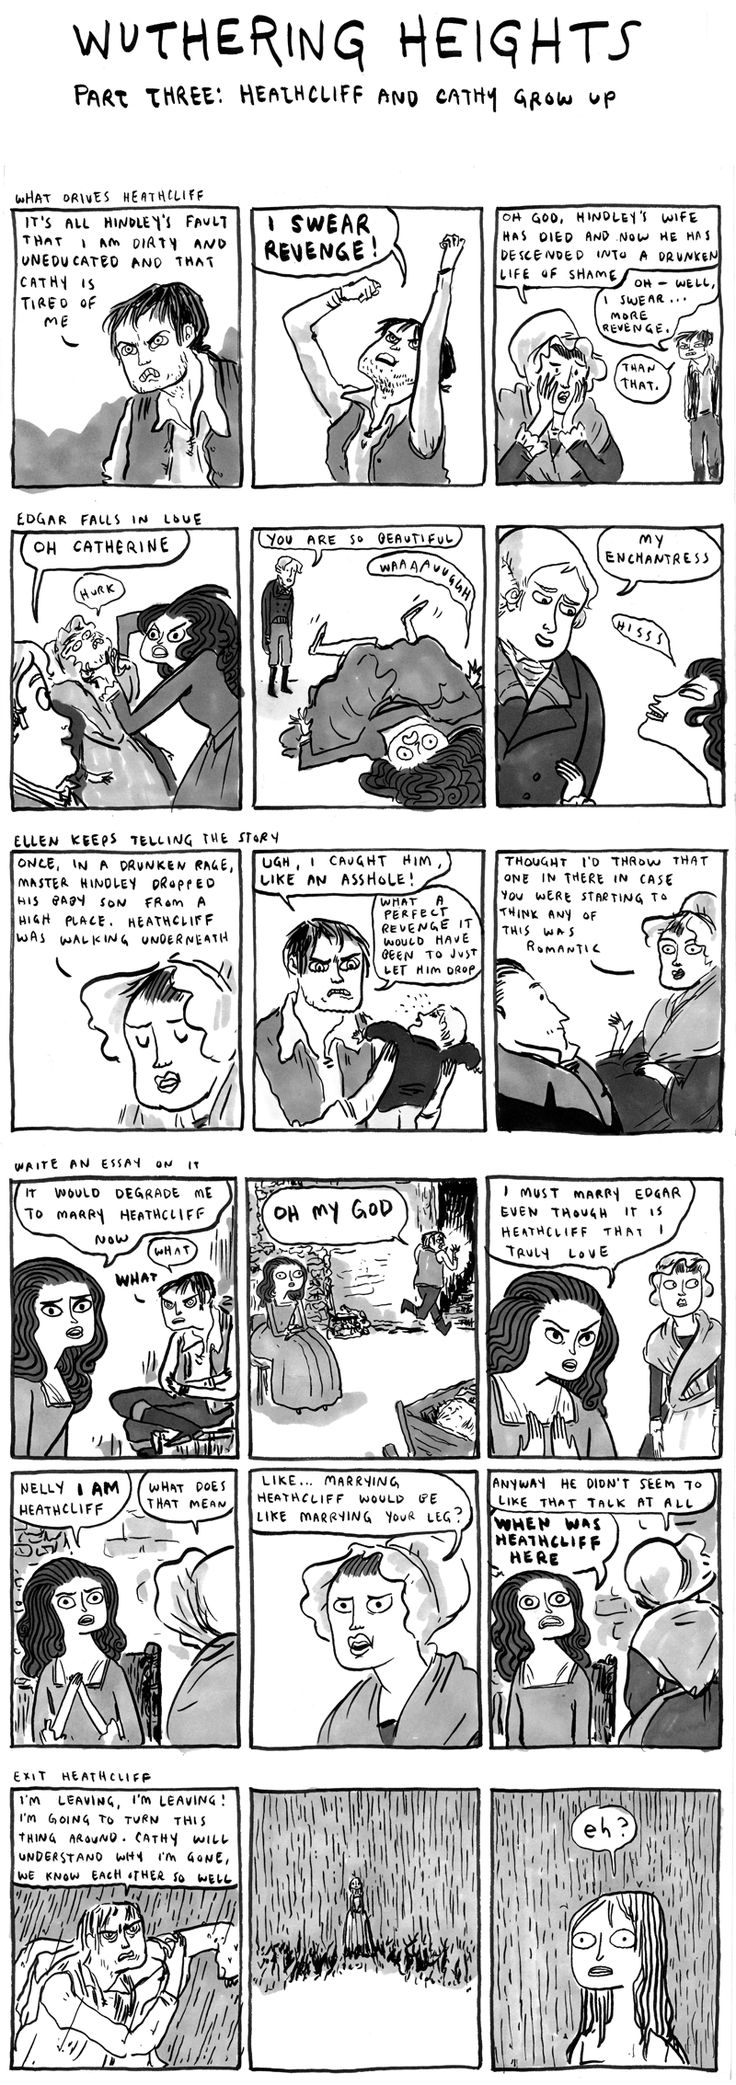 If you enjoy history and classic literature and you've never read this comic, YOU SHOULD.